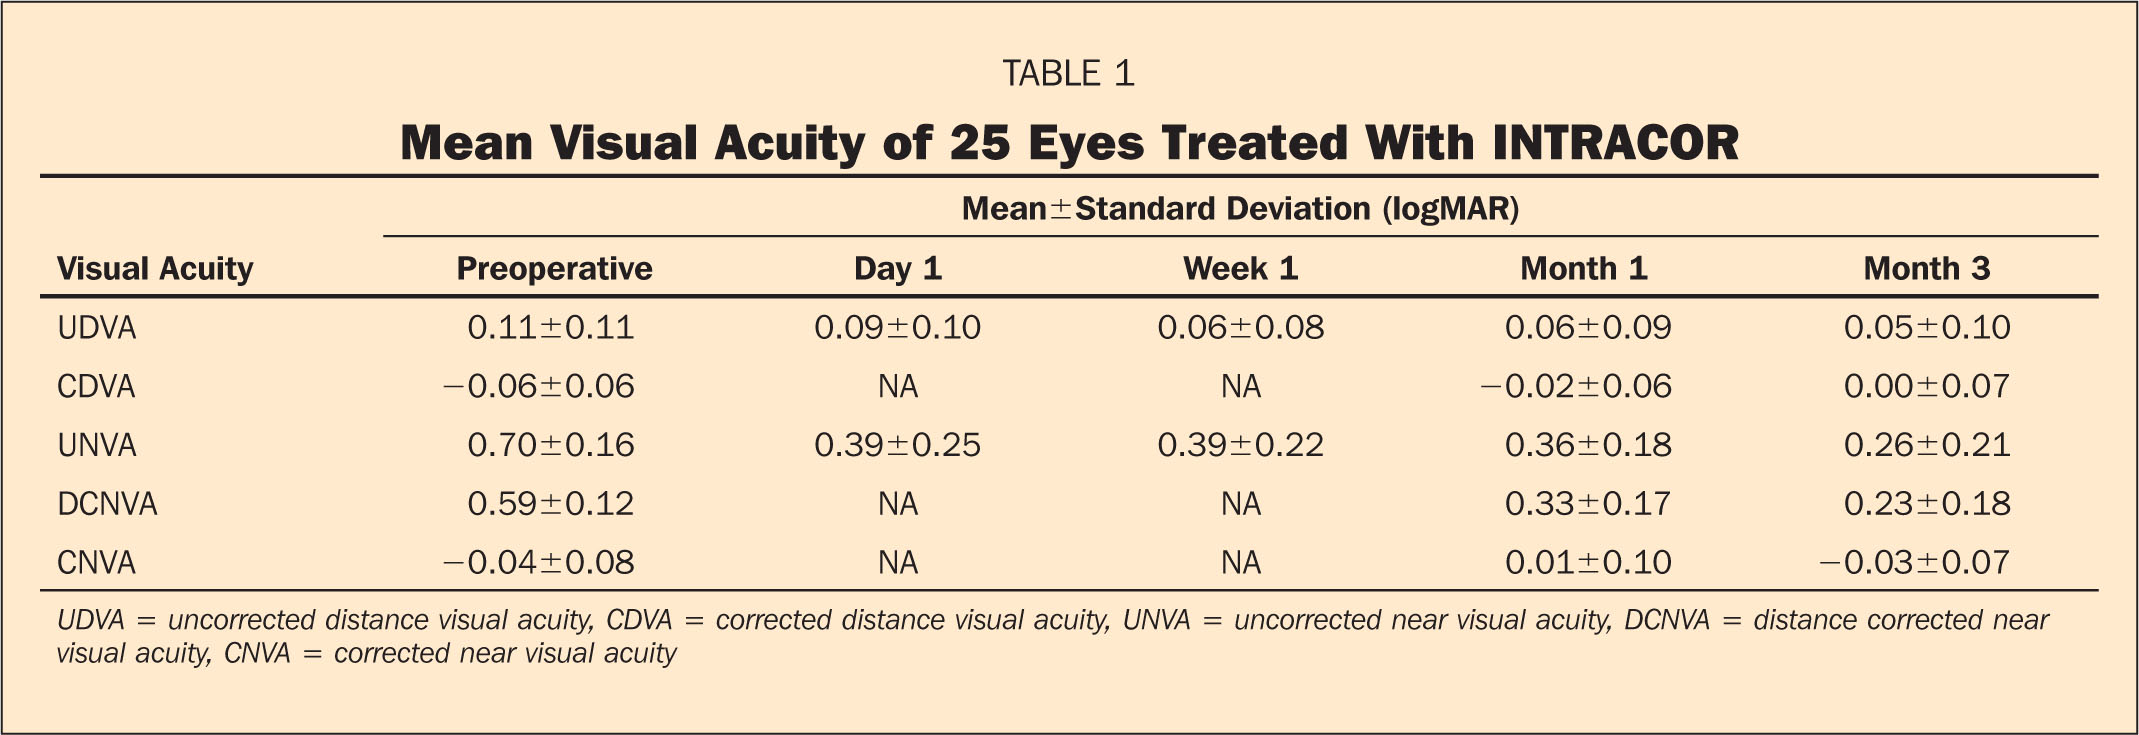 Mean Visual Acuity of 25 Eyes Treated with INTRACOR